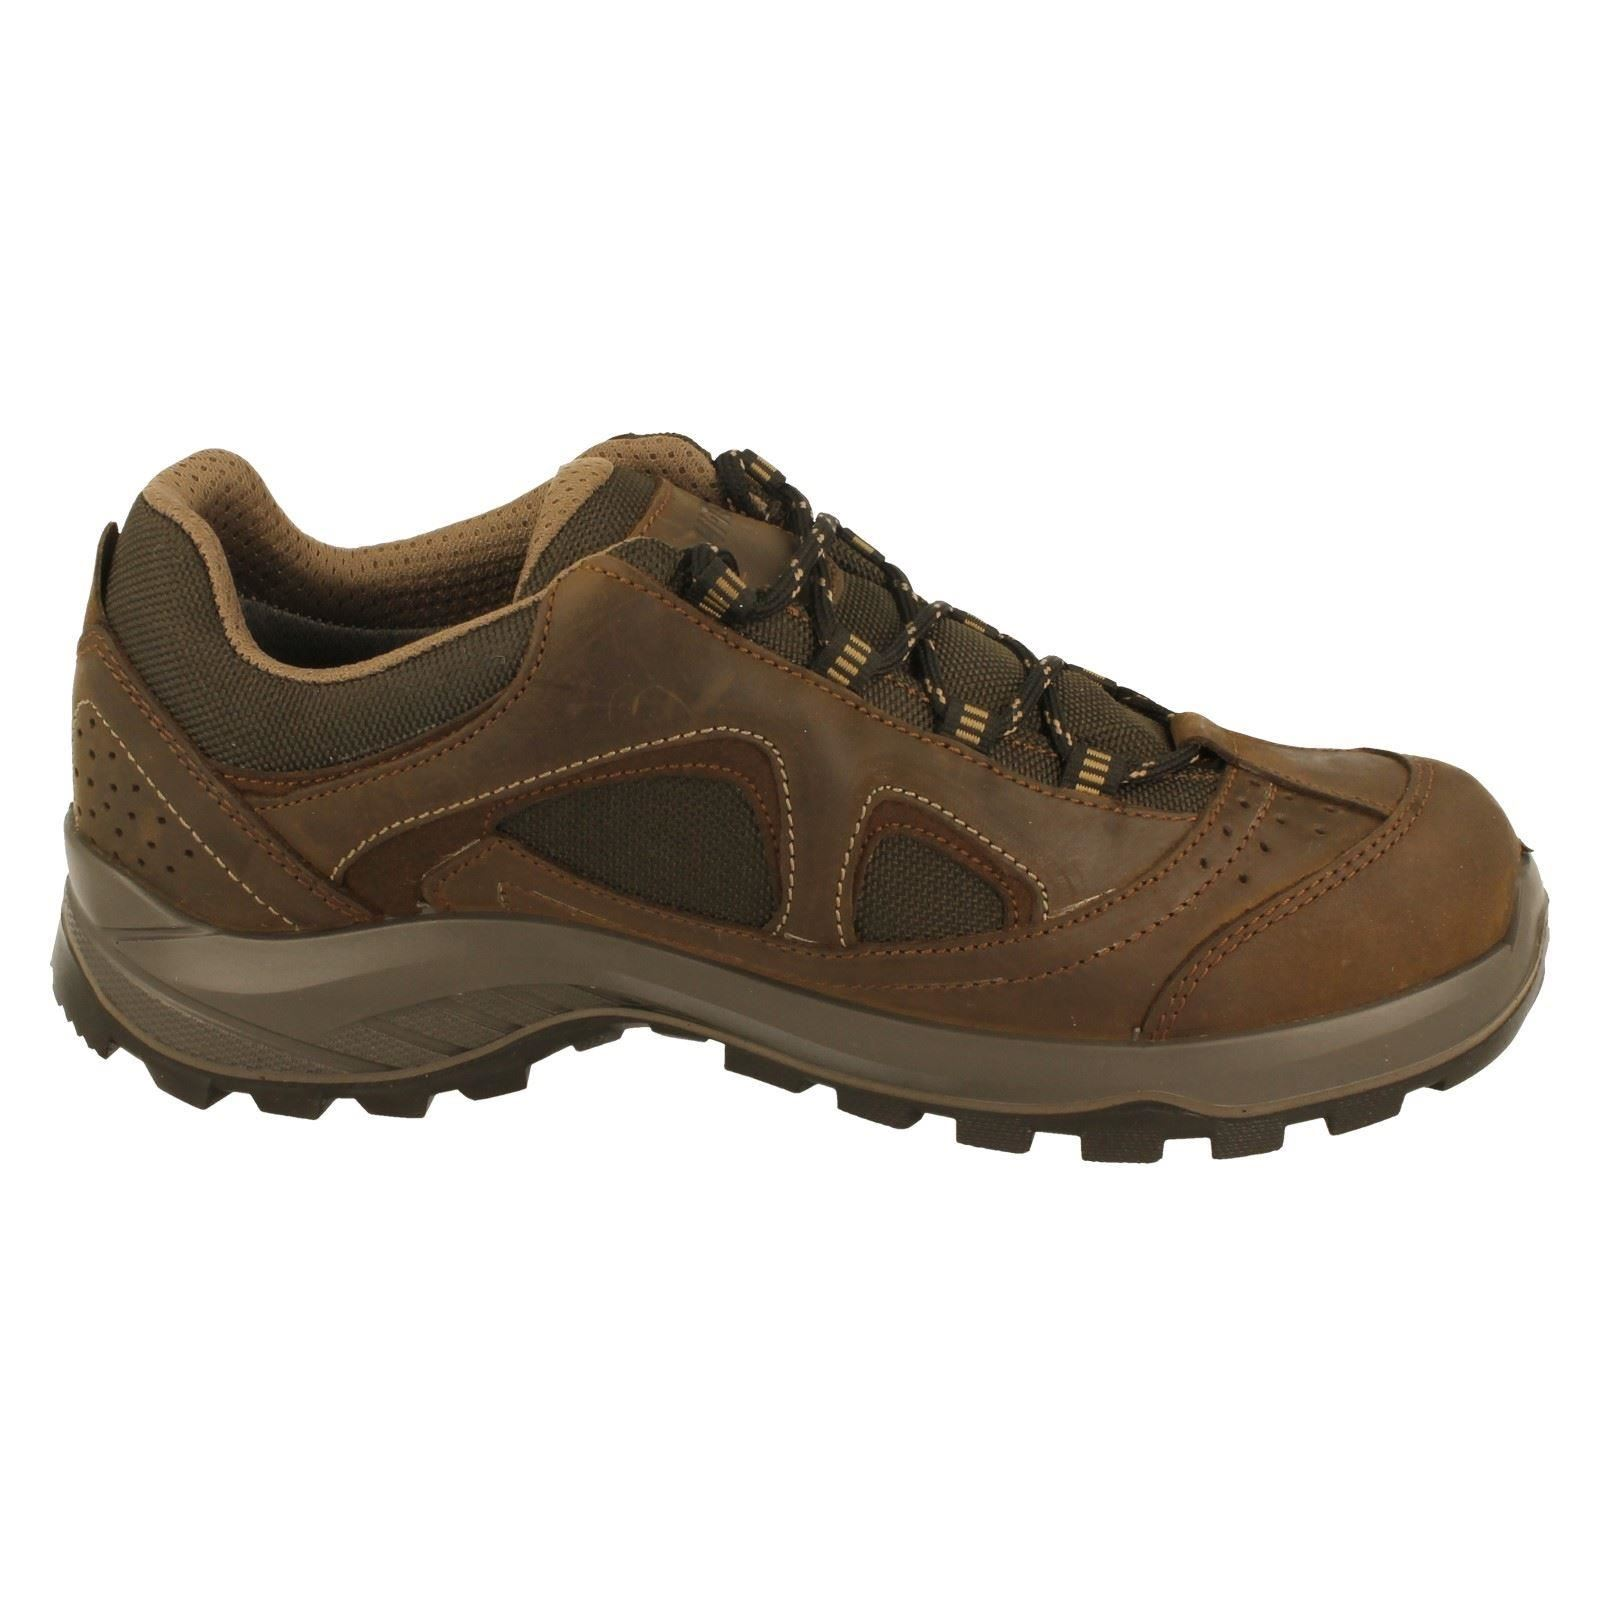 Mens Hi Tec Walking Shoes Style Walk Lite Lite Lite Camino WP-W 5caca5